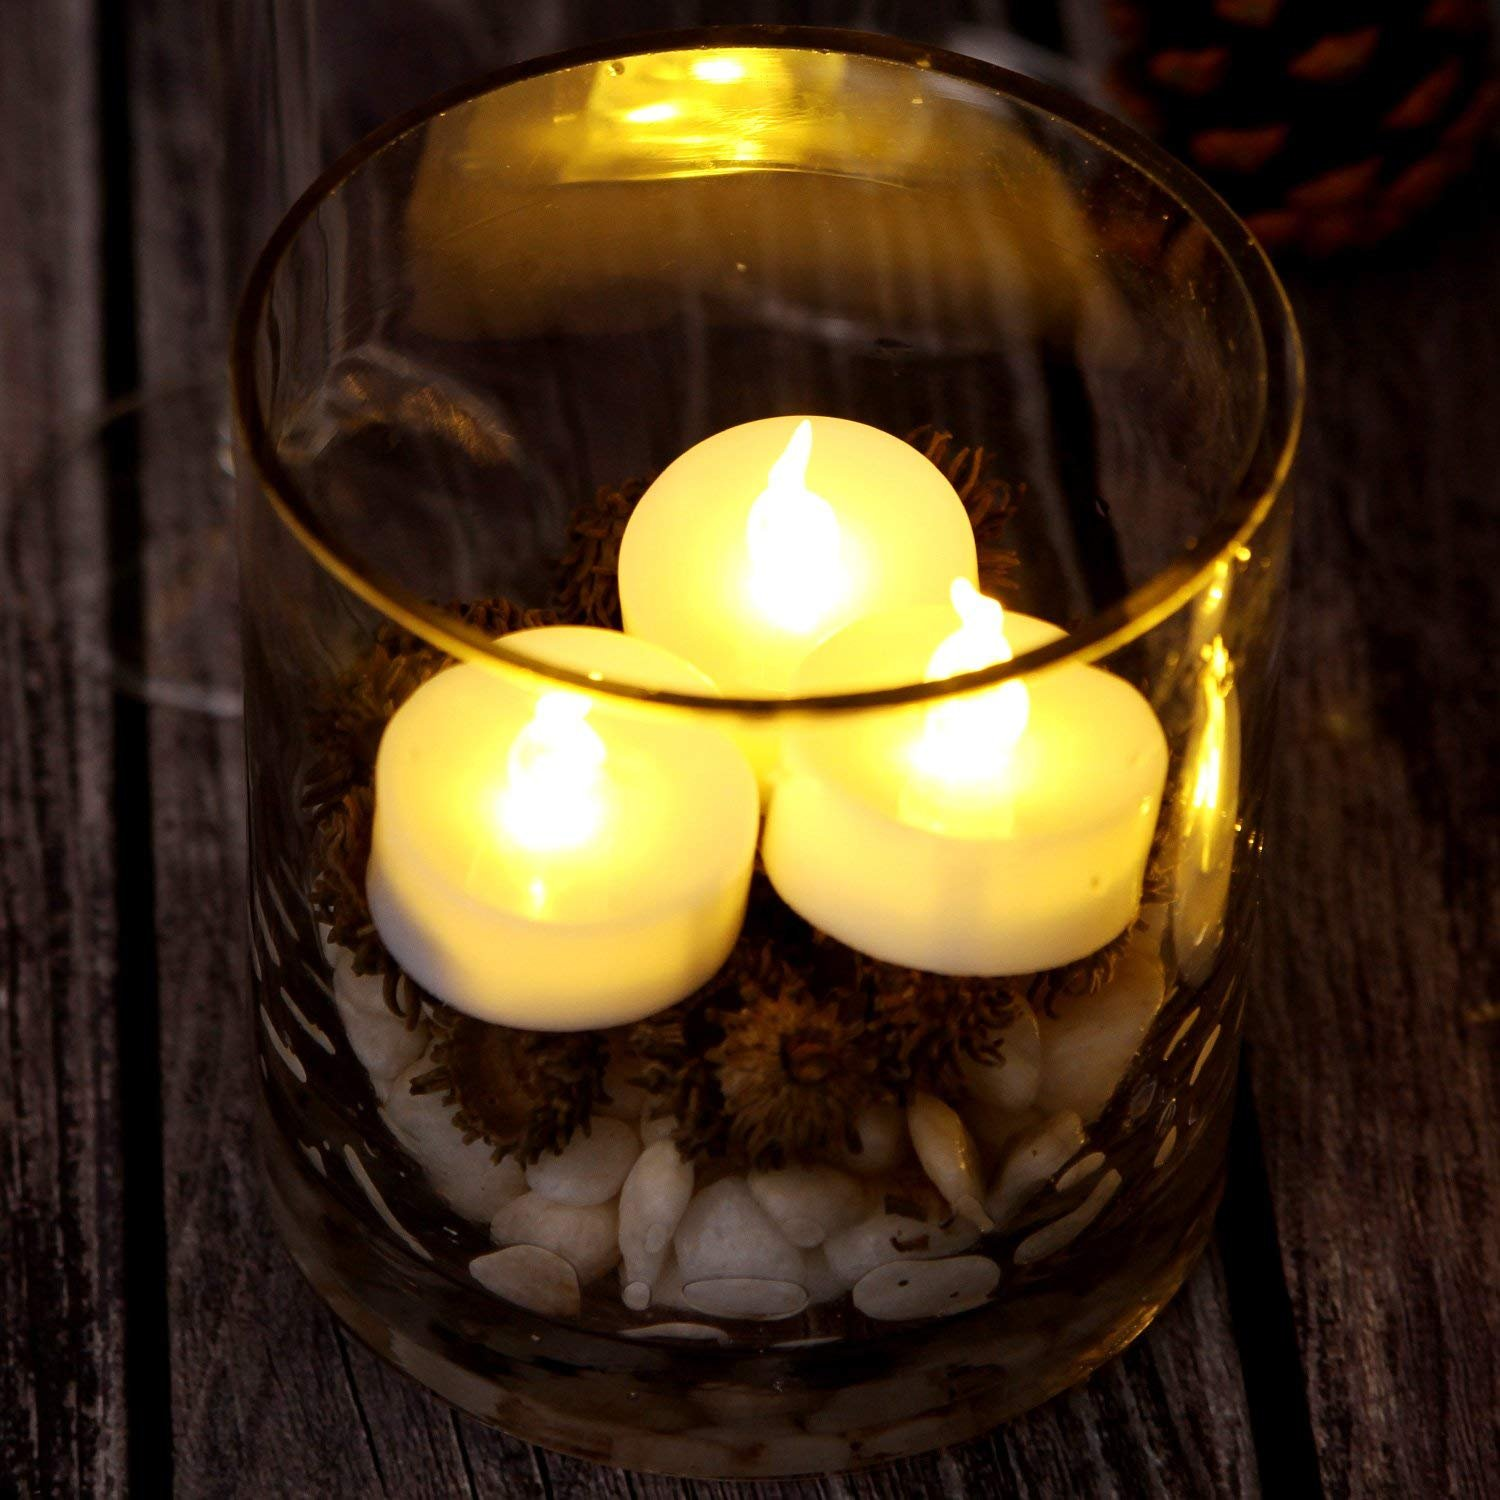 AGPtek No flicker Flameless LED Candles Battery-Operated Long Lasting Tealights for Wedding Holiday Party Home Decoration 24pcs(Warm White) by AGPTEK